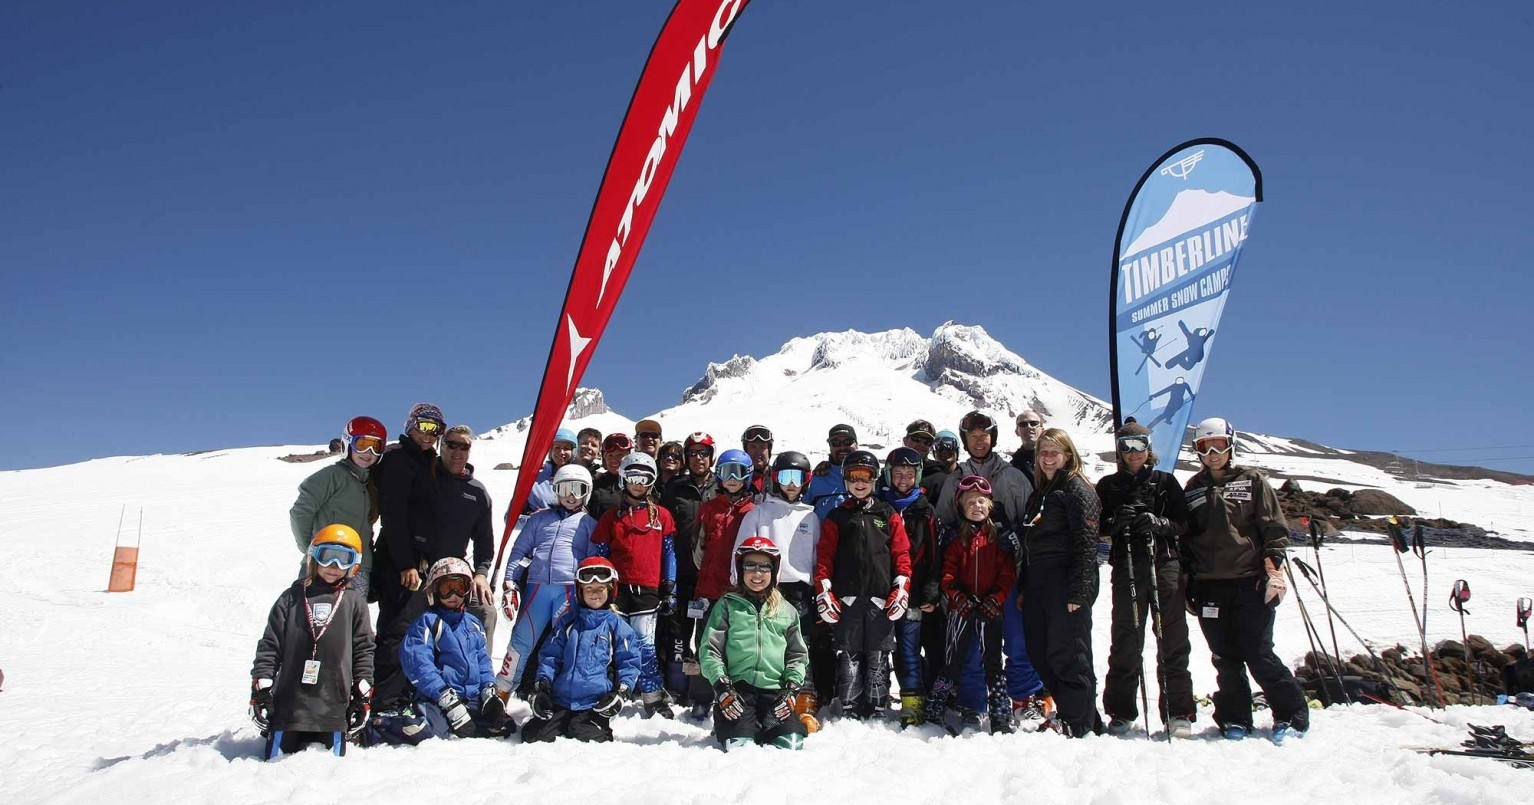 TIMBERLINE SUMMER SNOW CAMPS